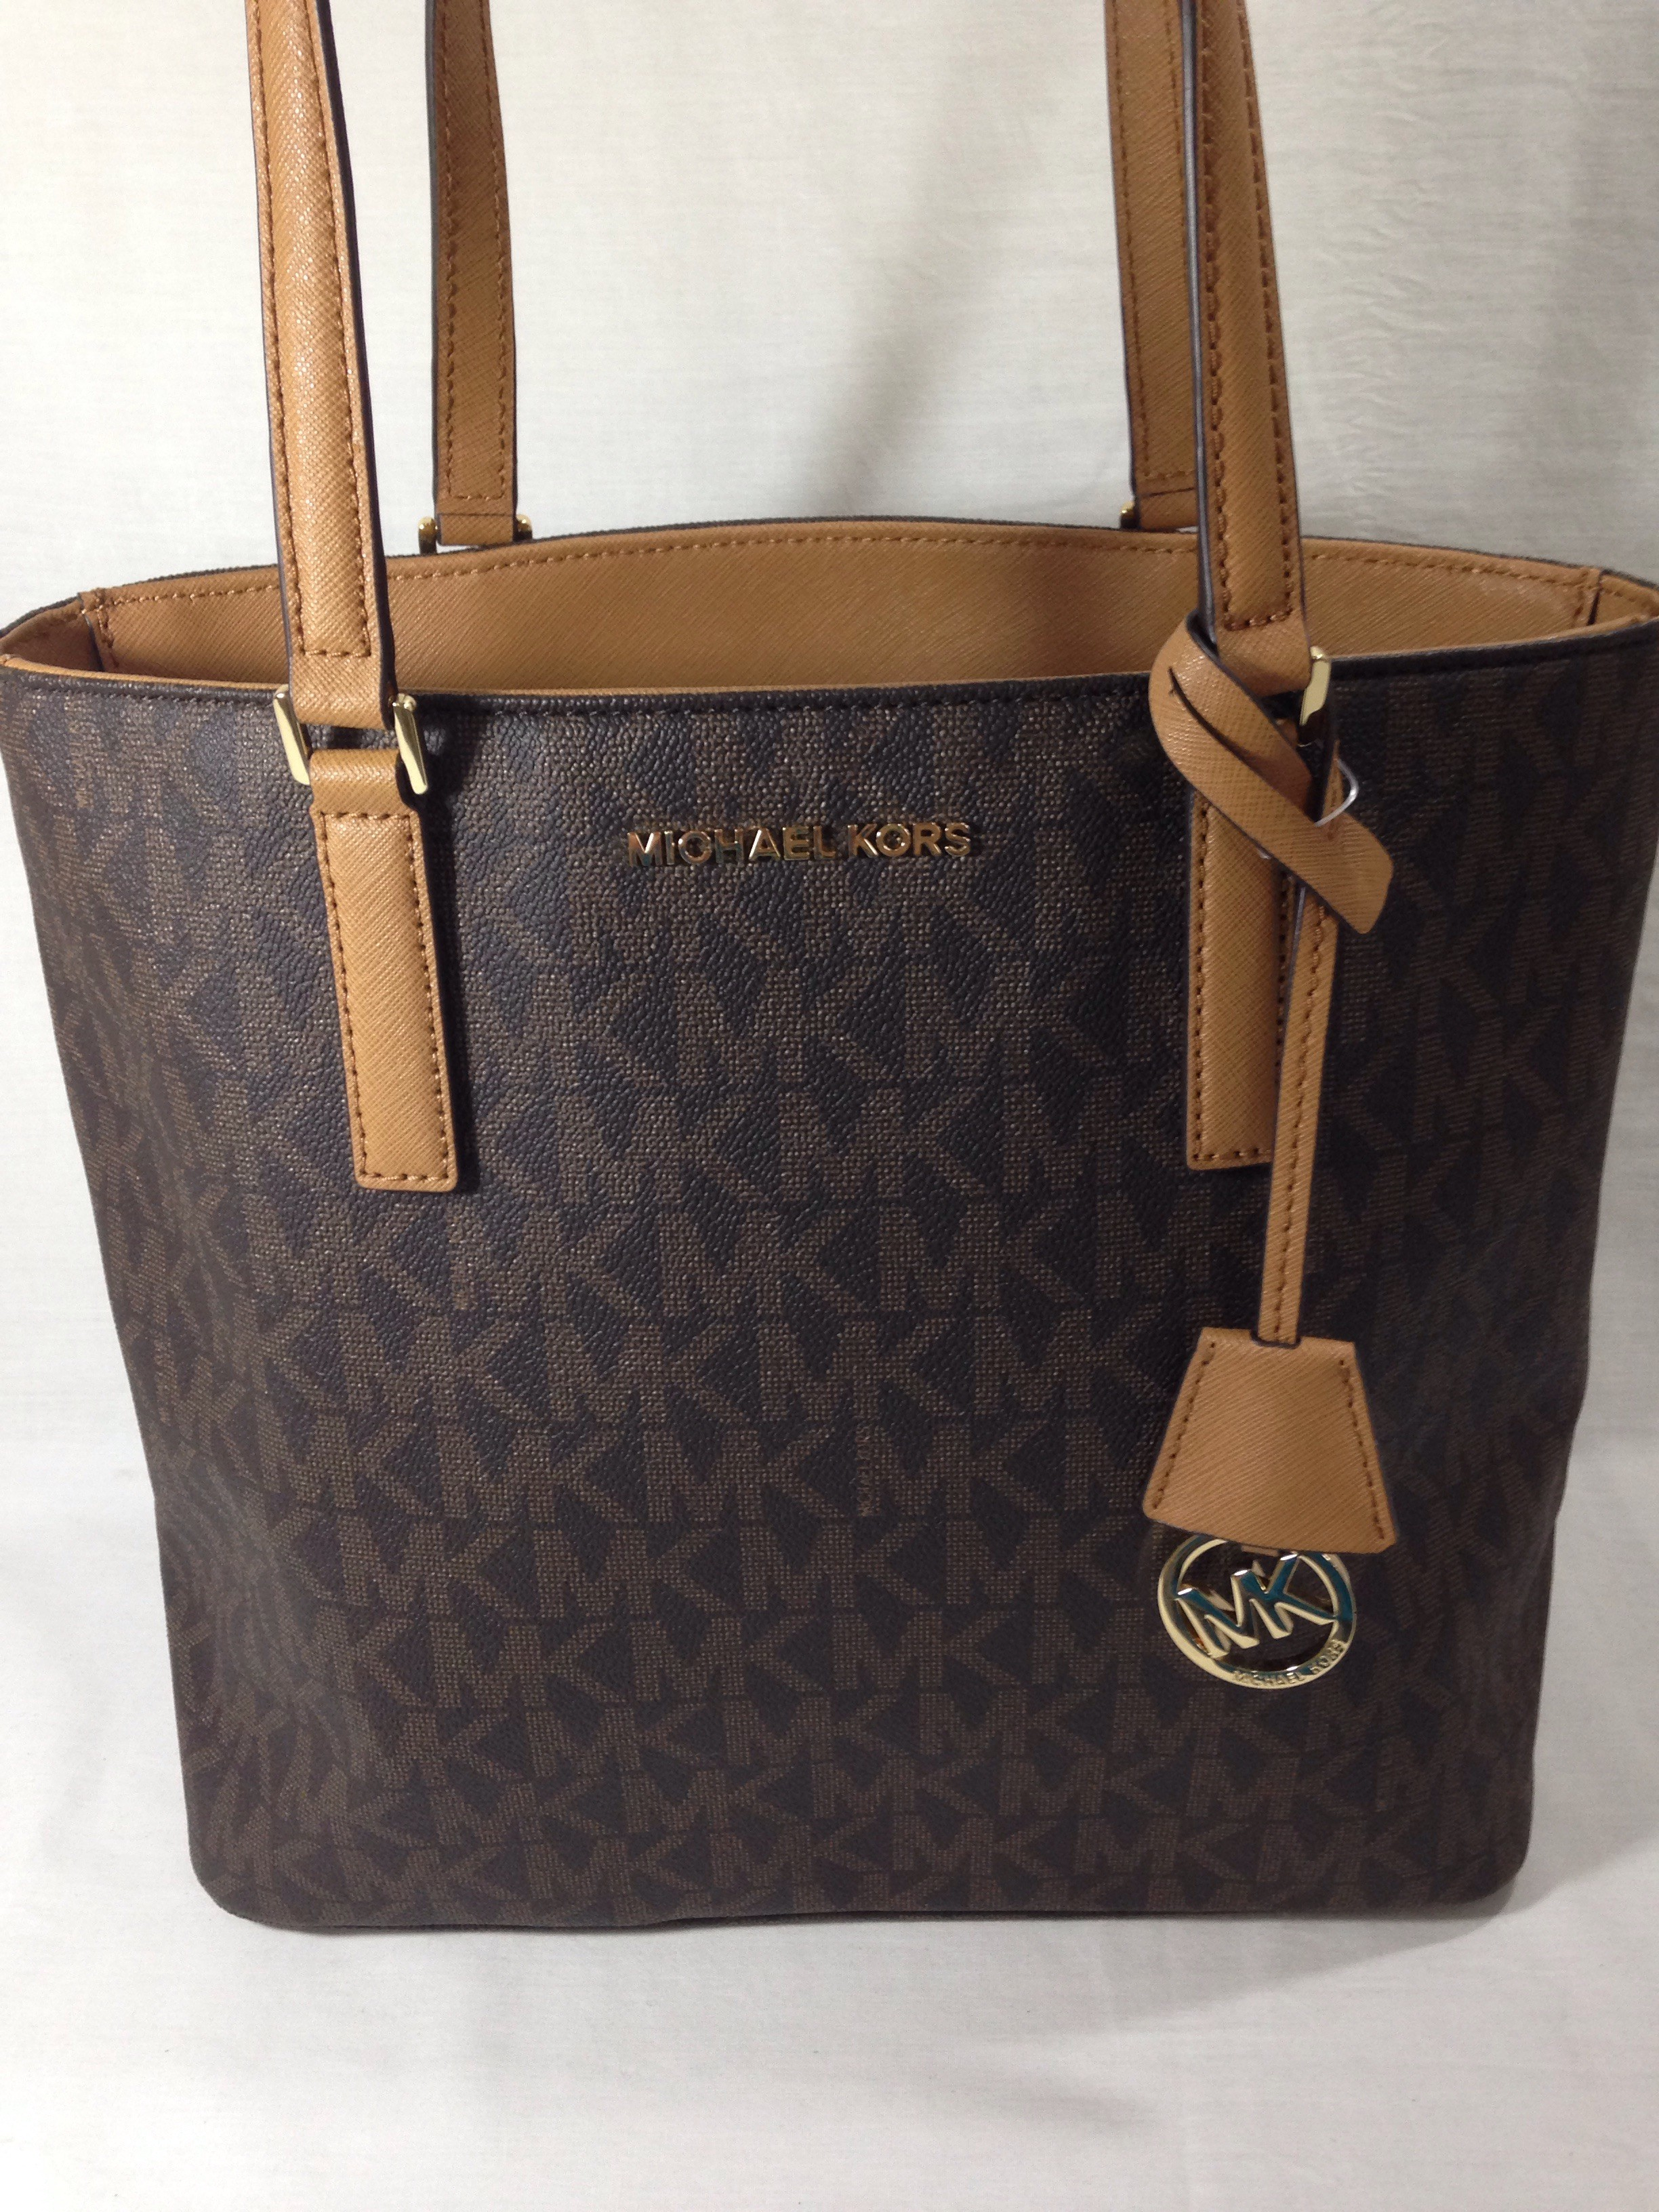 Michael kors tote bags philippines -  Michael Kors Morgan Signature Medium Tote Bag Lightbox Moreview